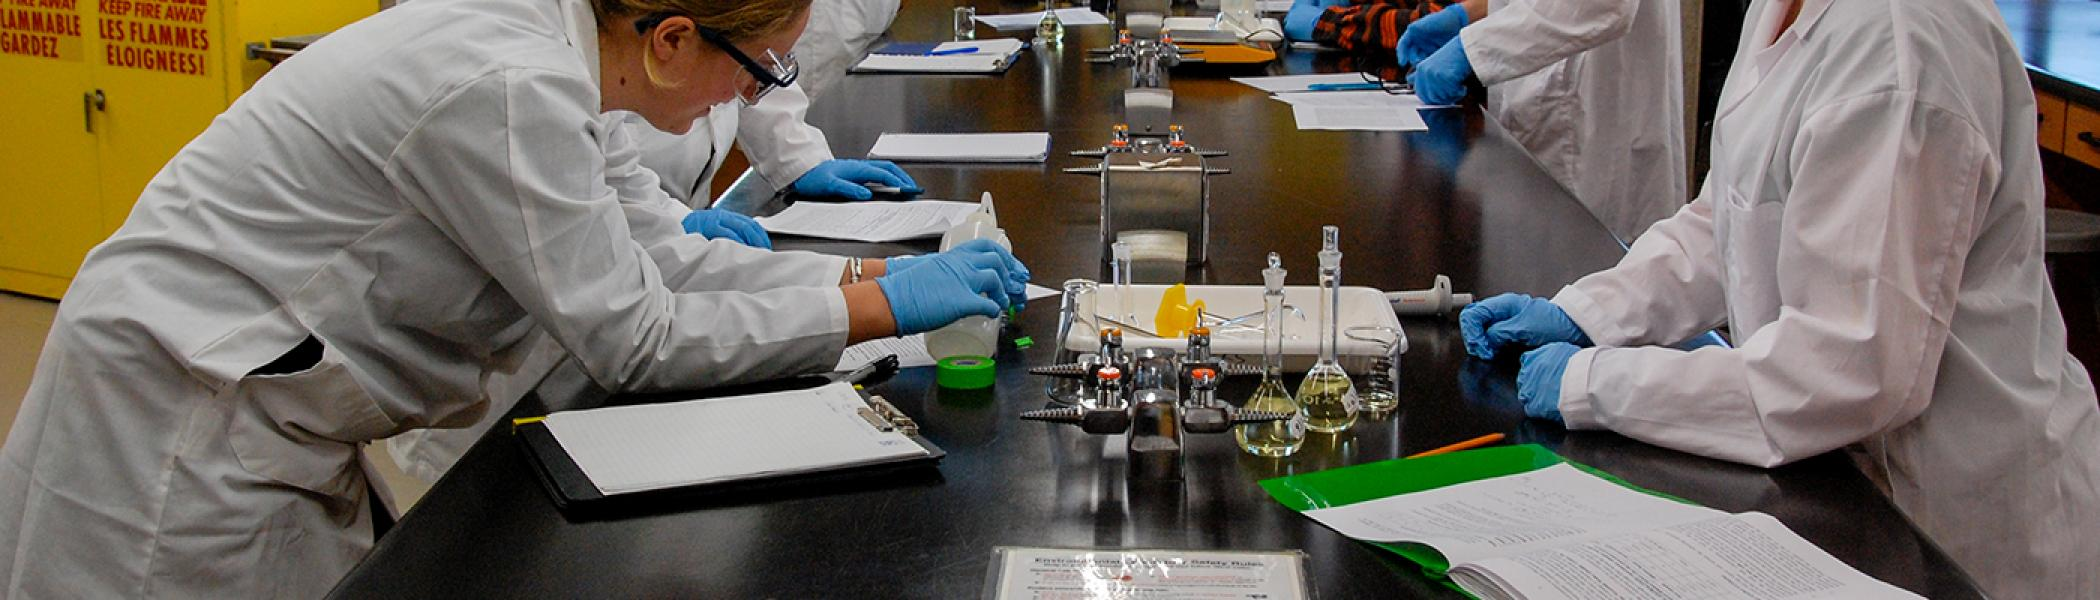 Students in white labcoats mixing samples in test tubes in a lab